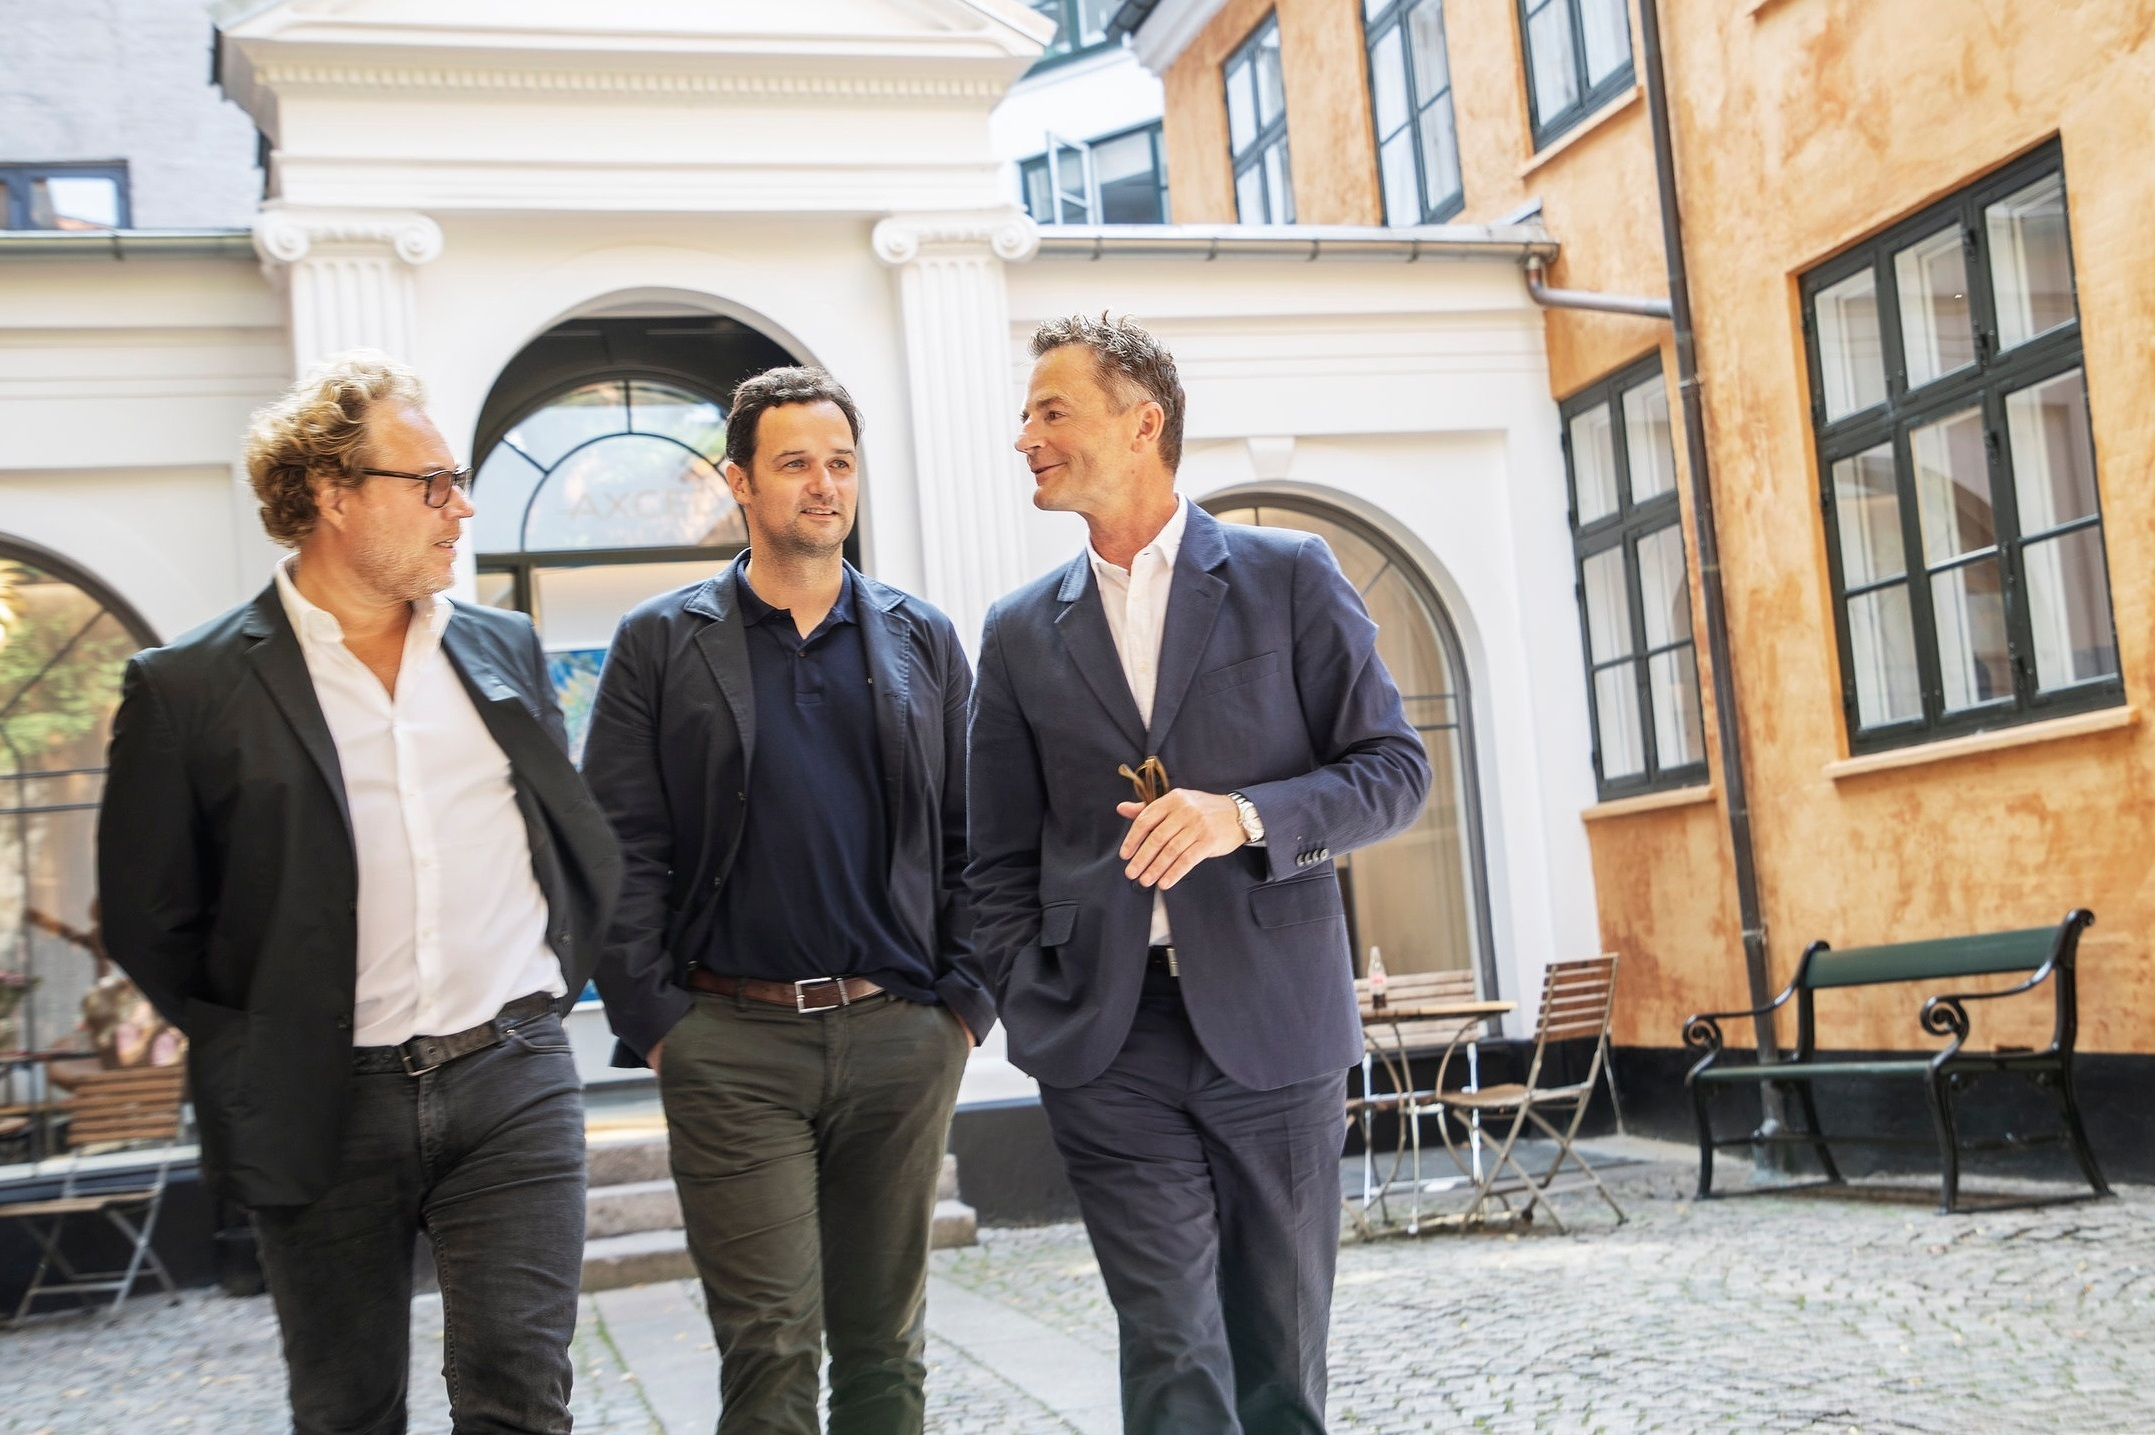 From left to right: Jacob Gubi Olsen (Creative Director), Kenni Riise (CEO) & Lars Munch (Chairman of the board)